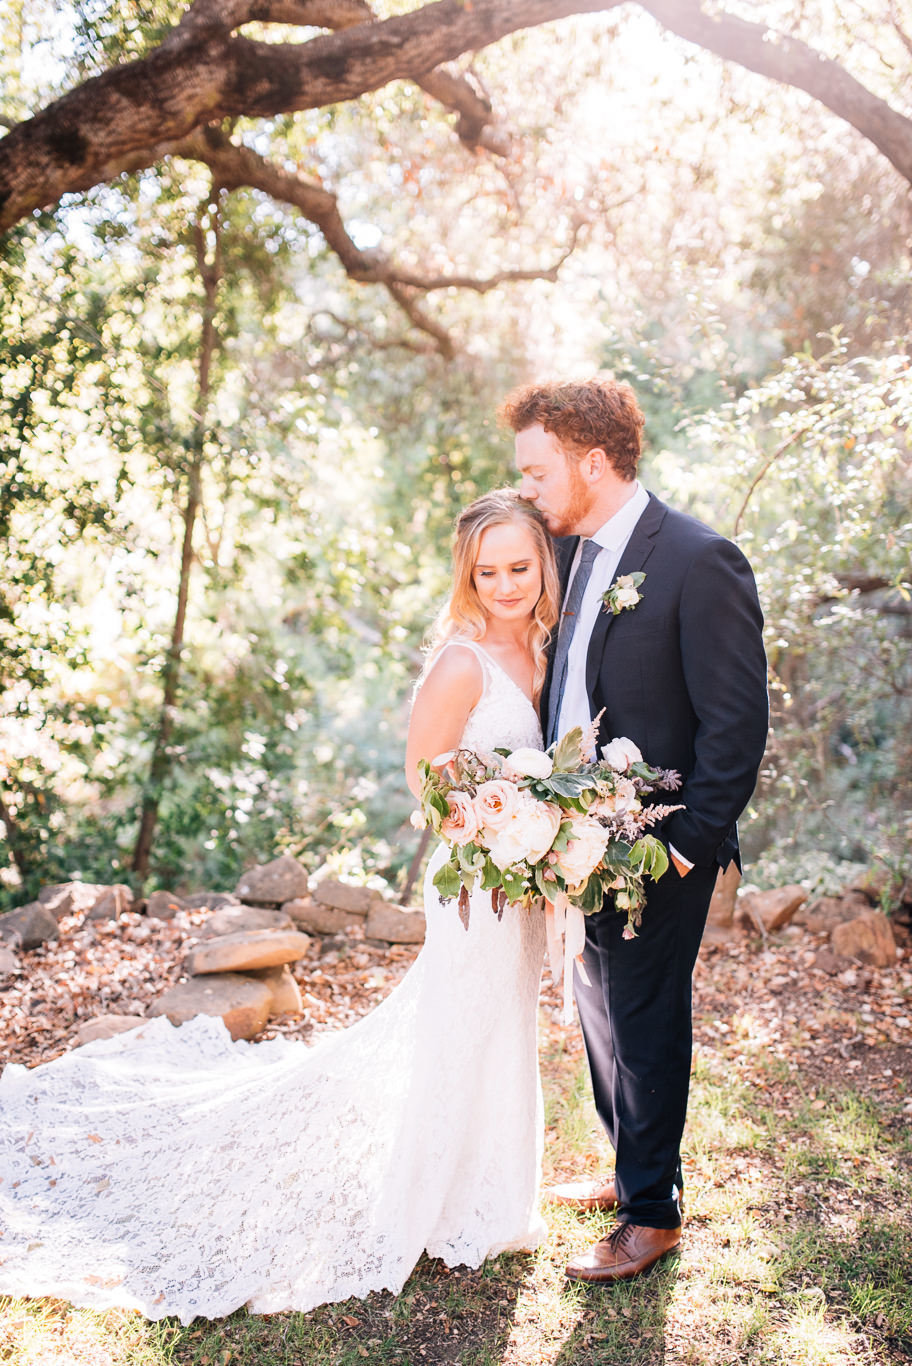 San Luis Obispo wedding photo by Amber McGaughey028